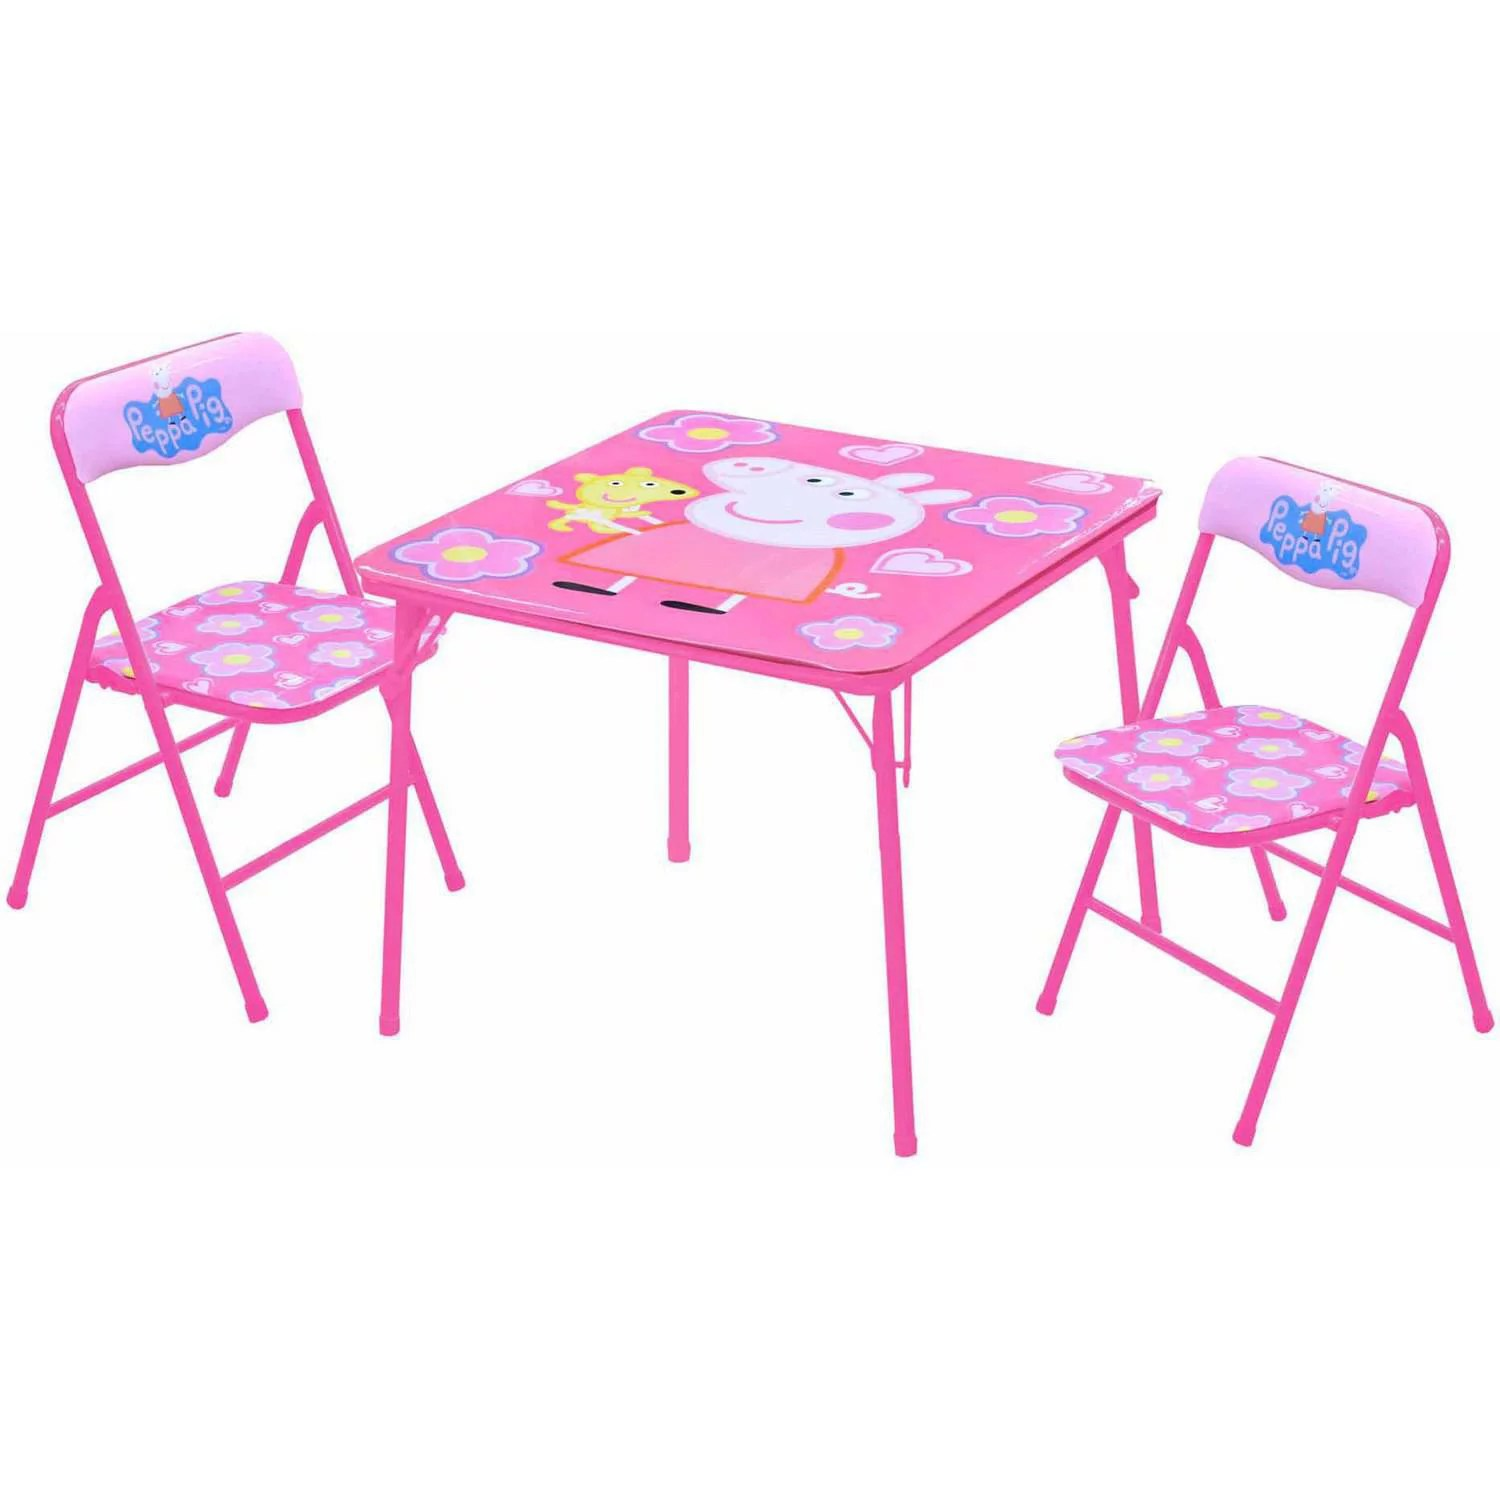 walmart table and chair sets how much are covers sashes peppa pig set com